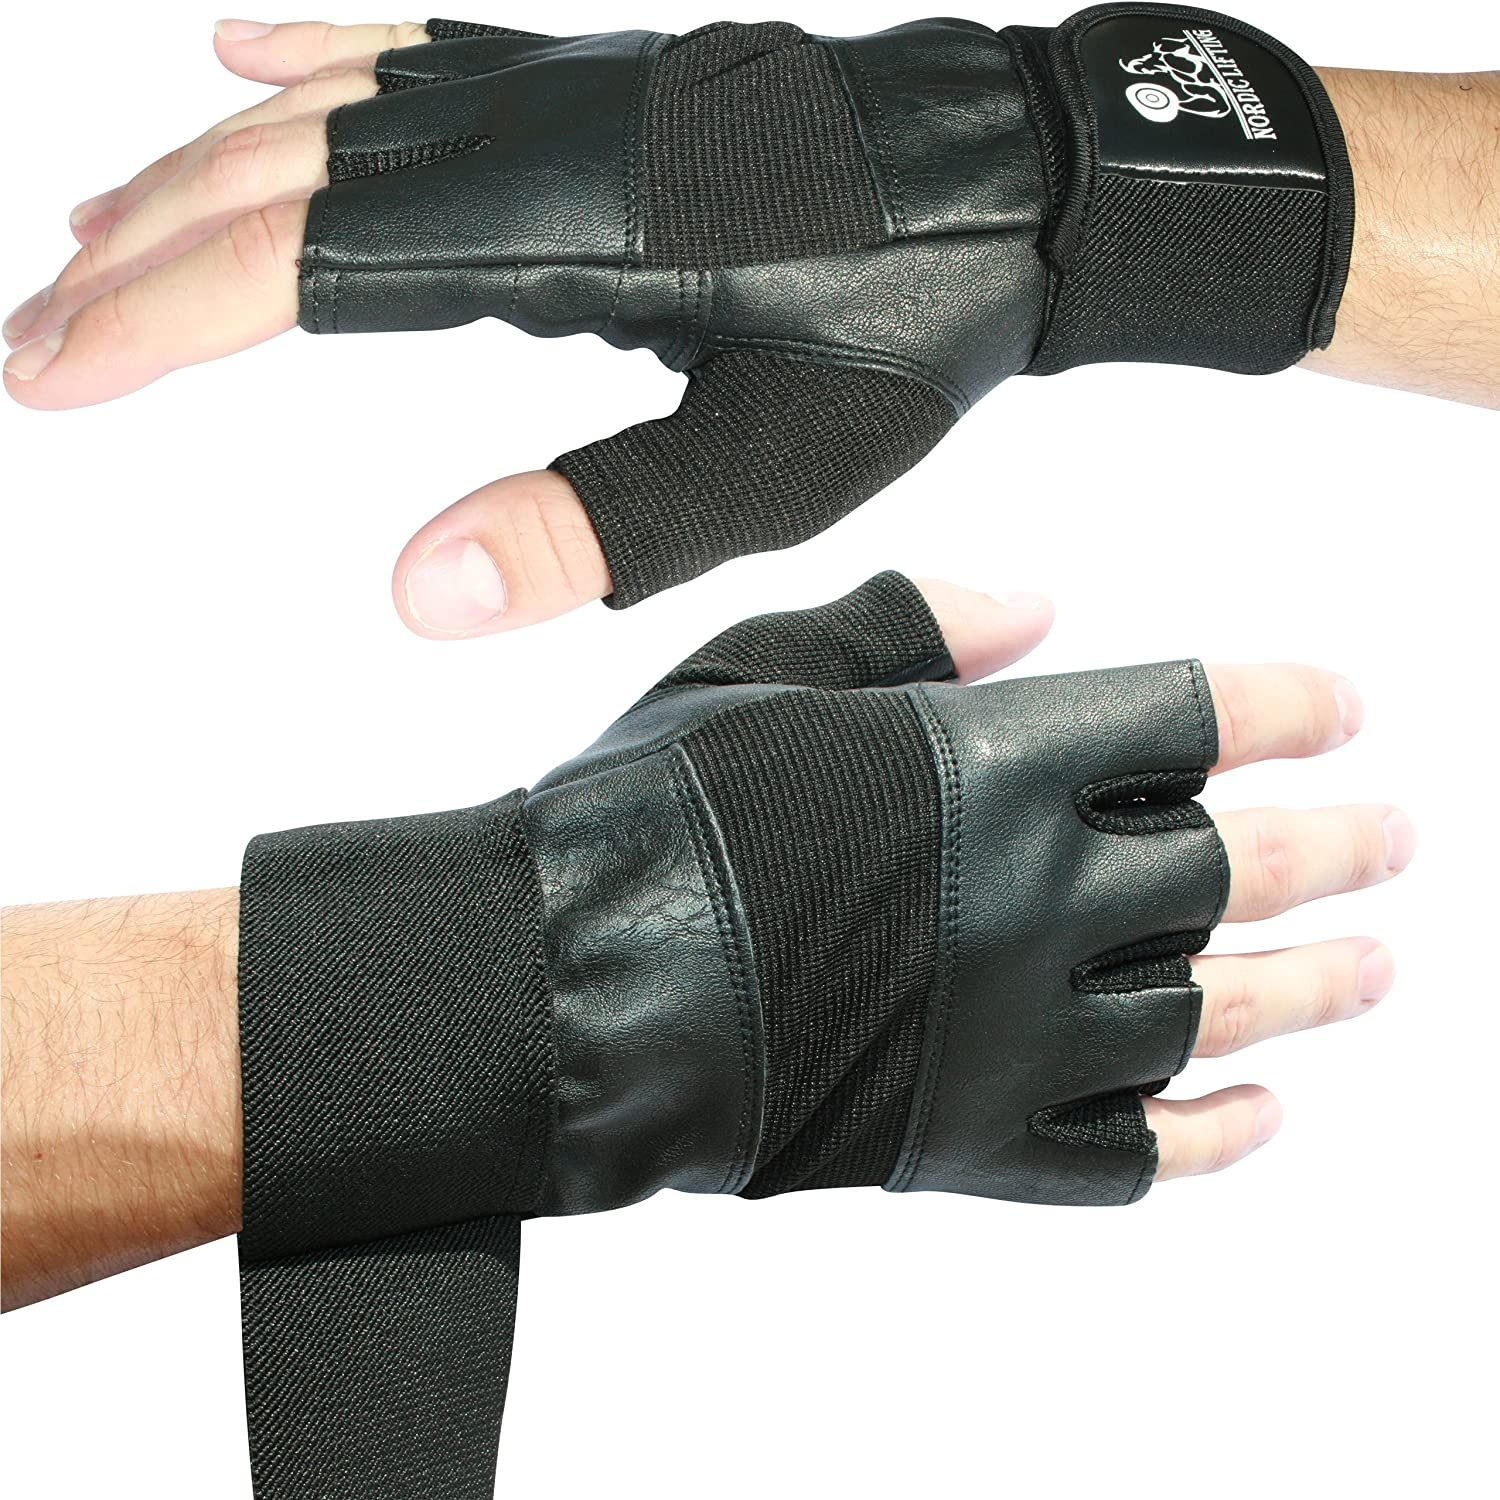 Weightlifting CrossFit Premium Quality Gear Weight Lifting Gloves With 12 Wrist Support For Gym Workout 1 Year Warranty The Best For Men /& Women Fitness /& Cross Training